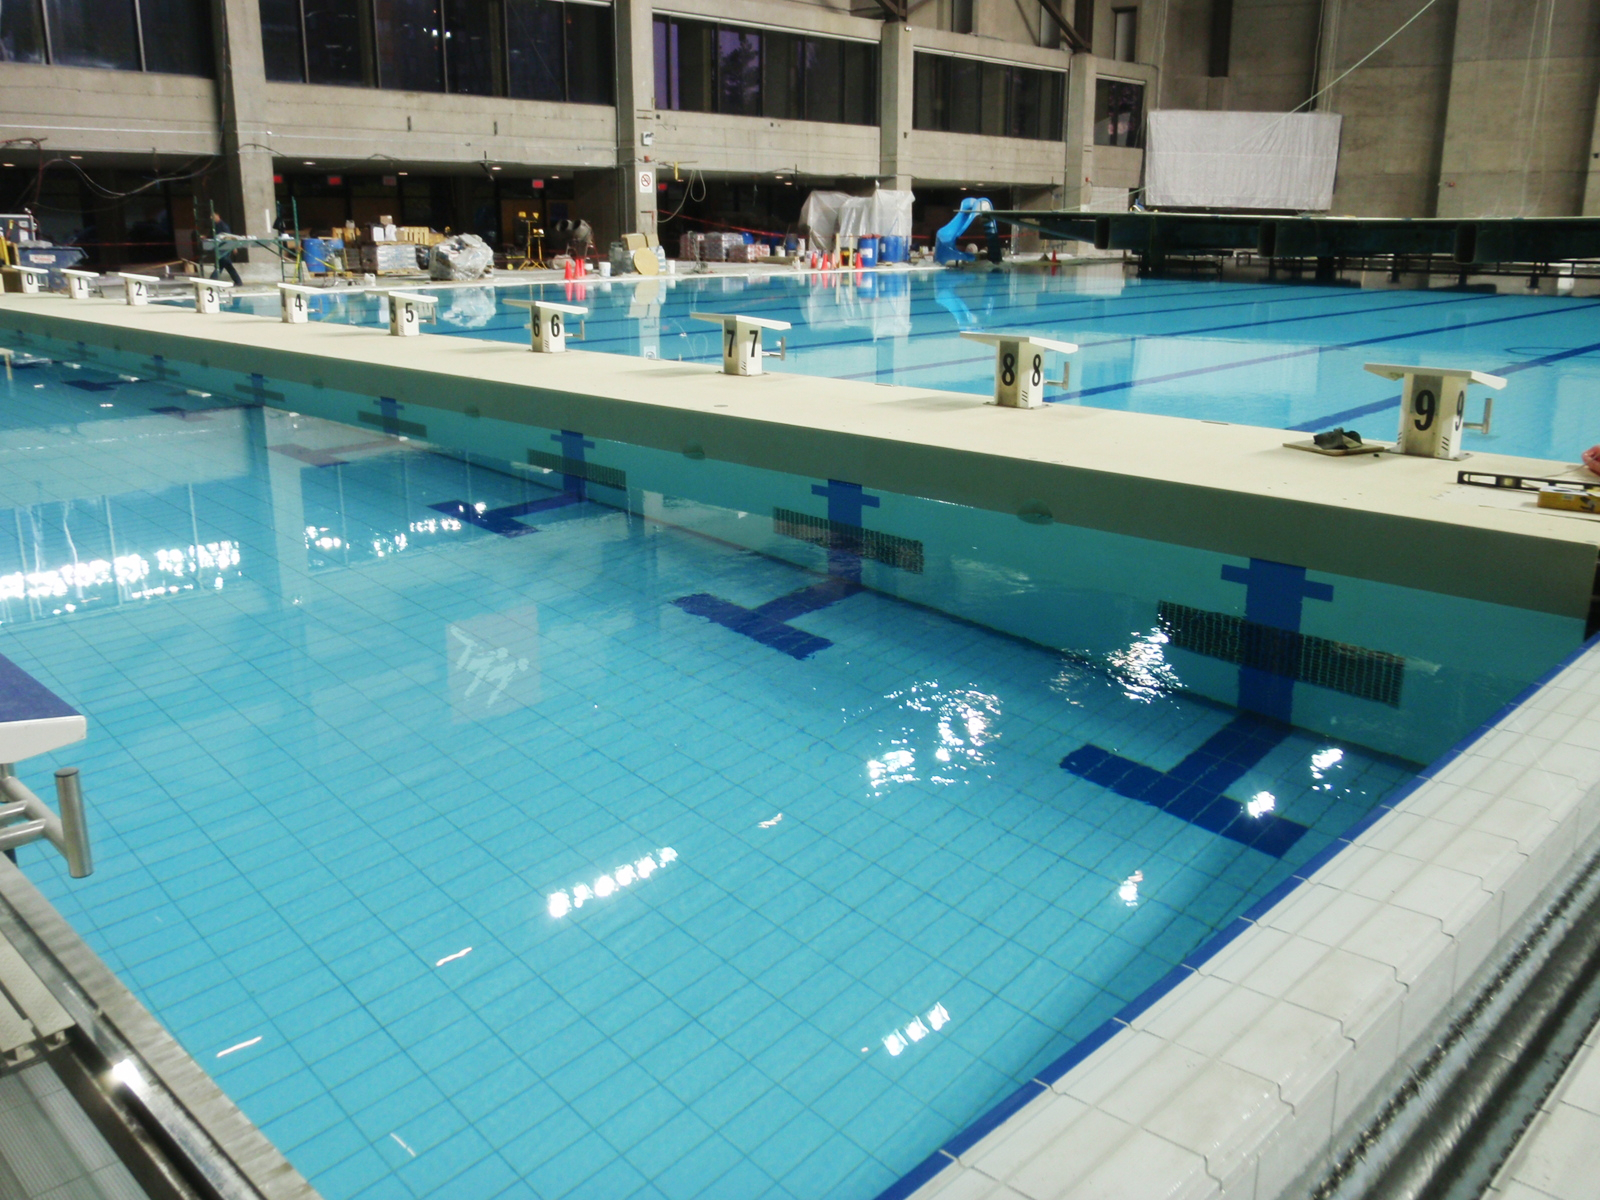 Mfr solutions aquatiques mf2 aero for Claude robillard piscine